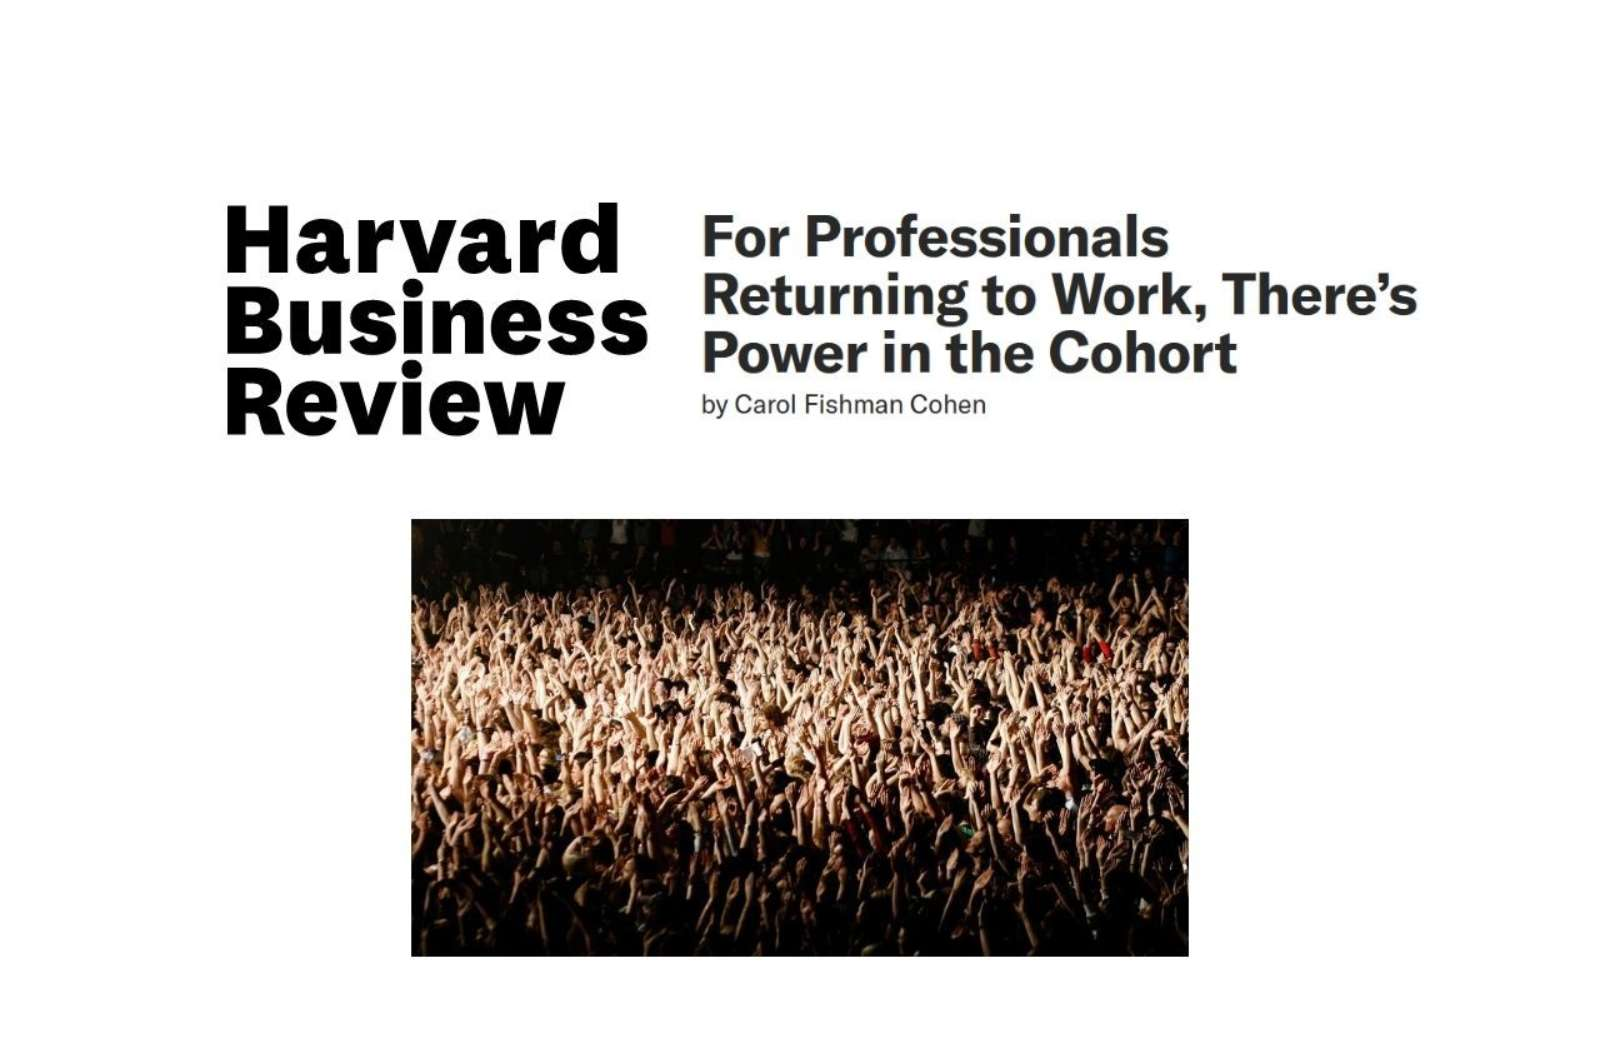 Hbr theres power in the cohort news thumbnail